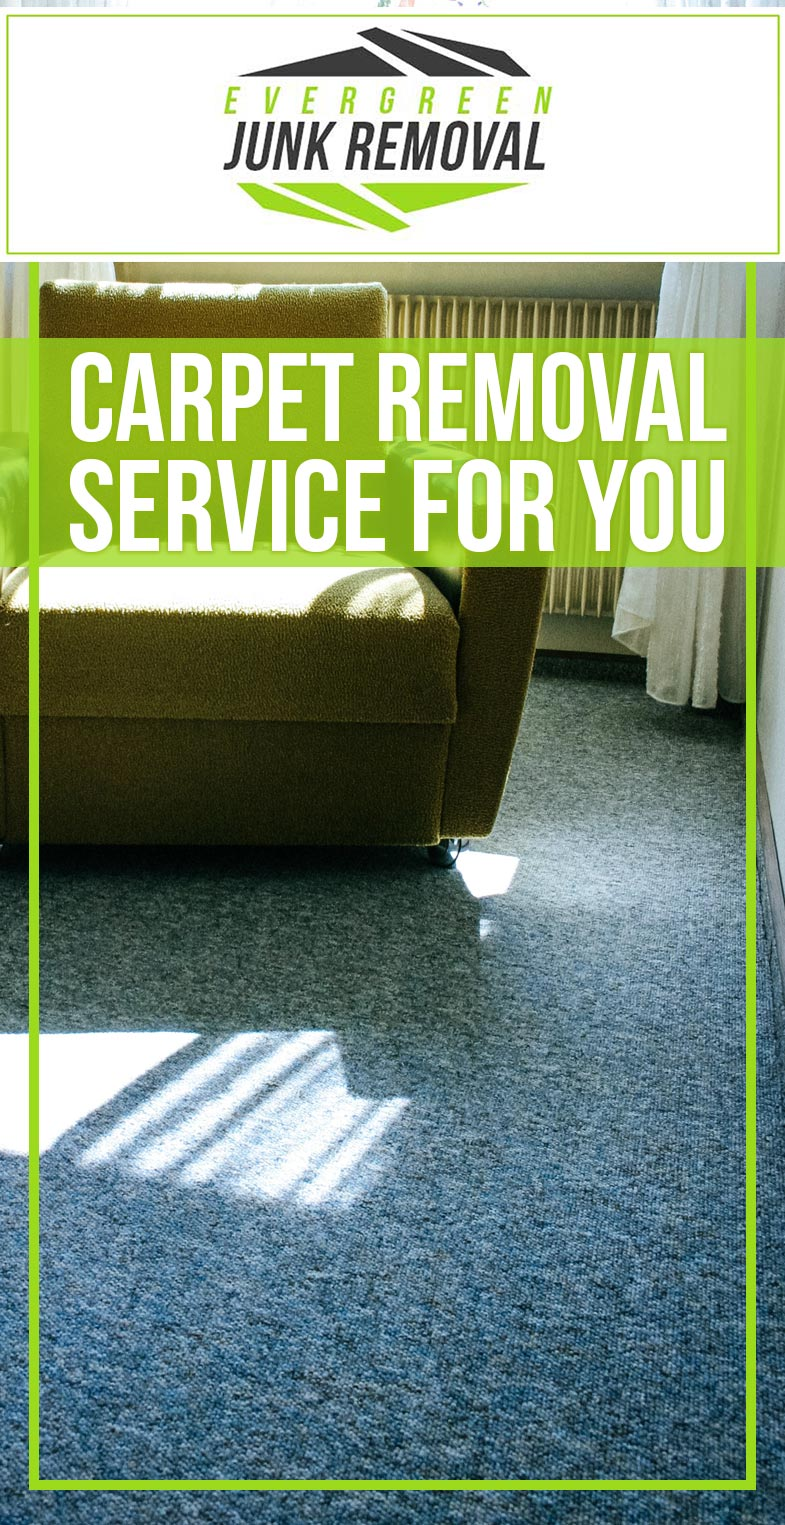 Carpet Removal Service In West Palm Beach